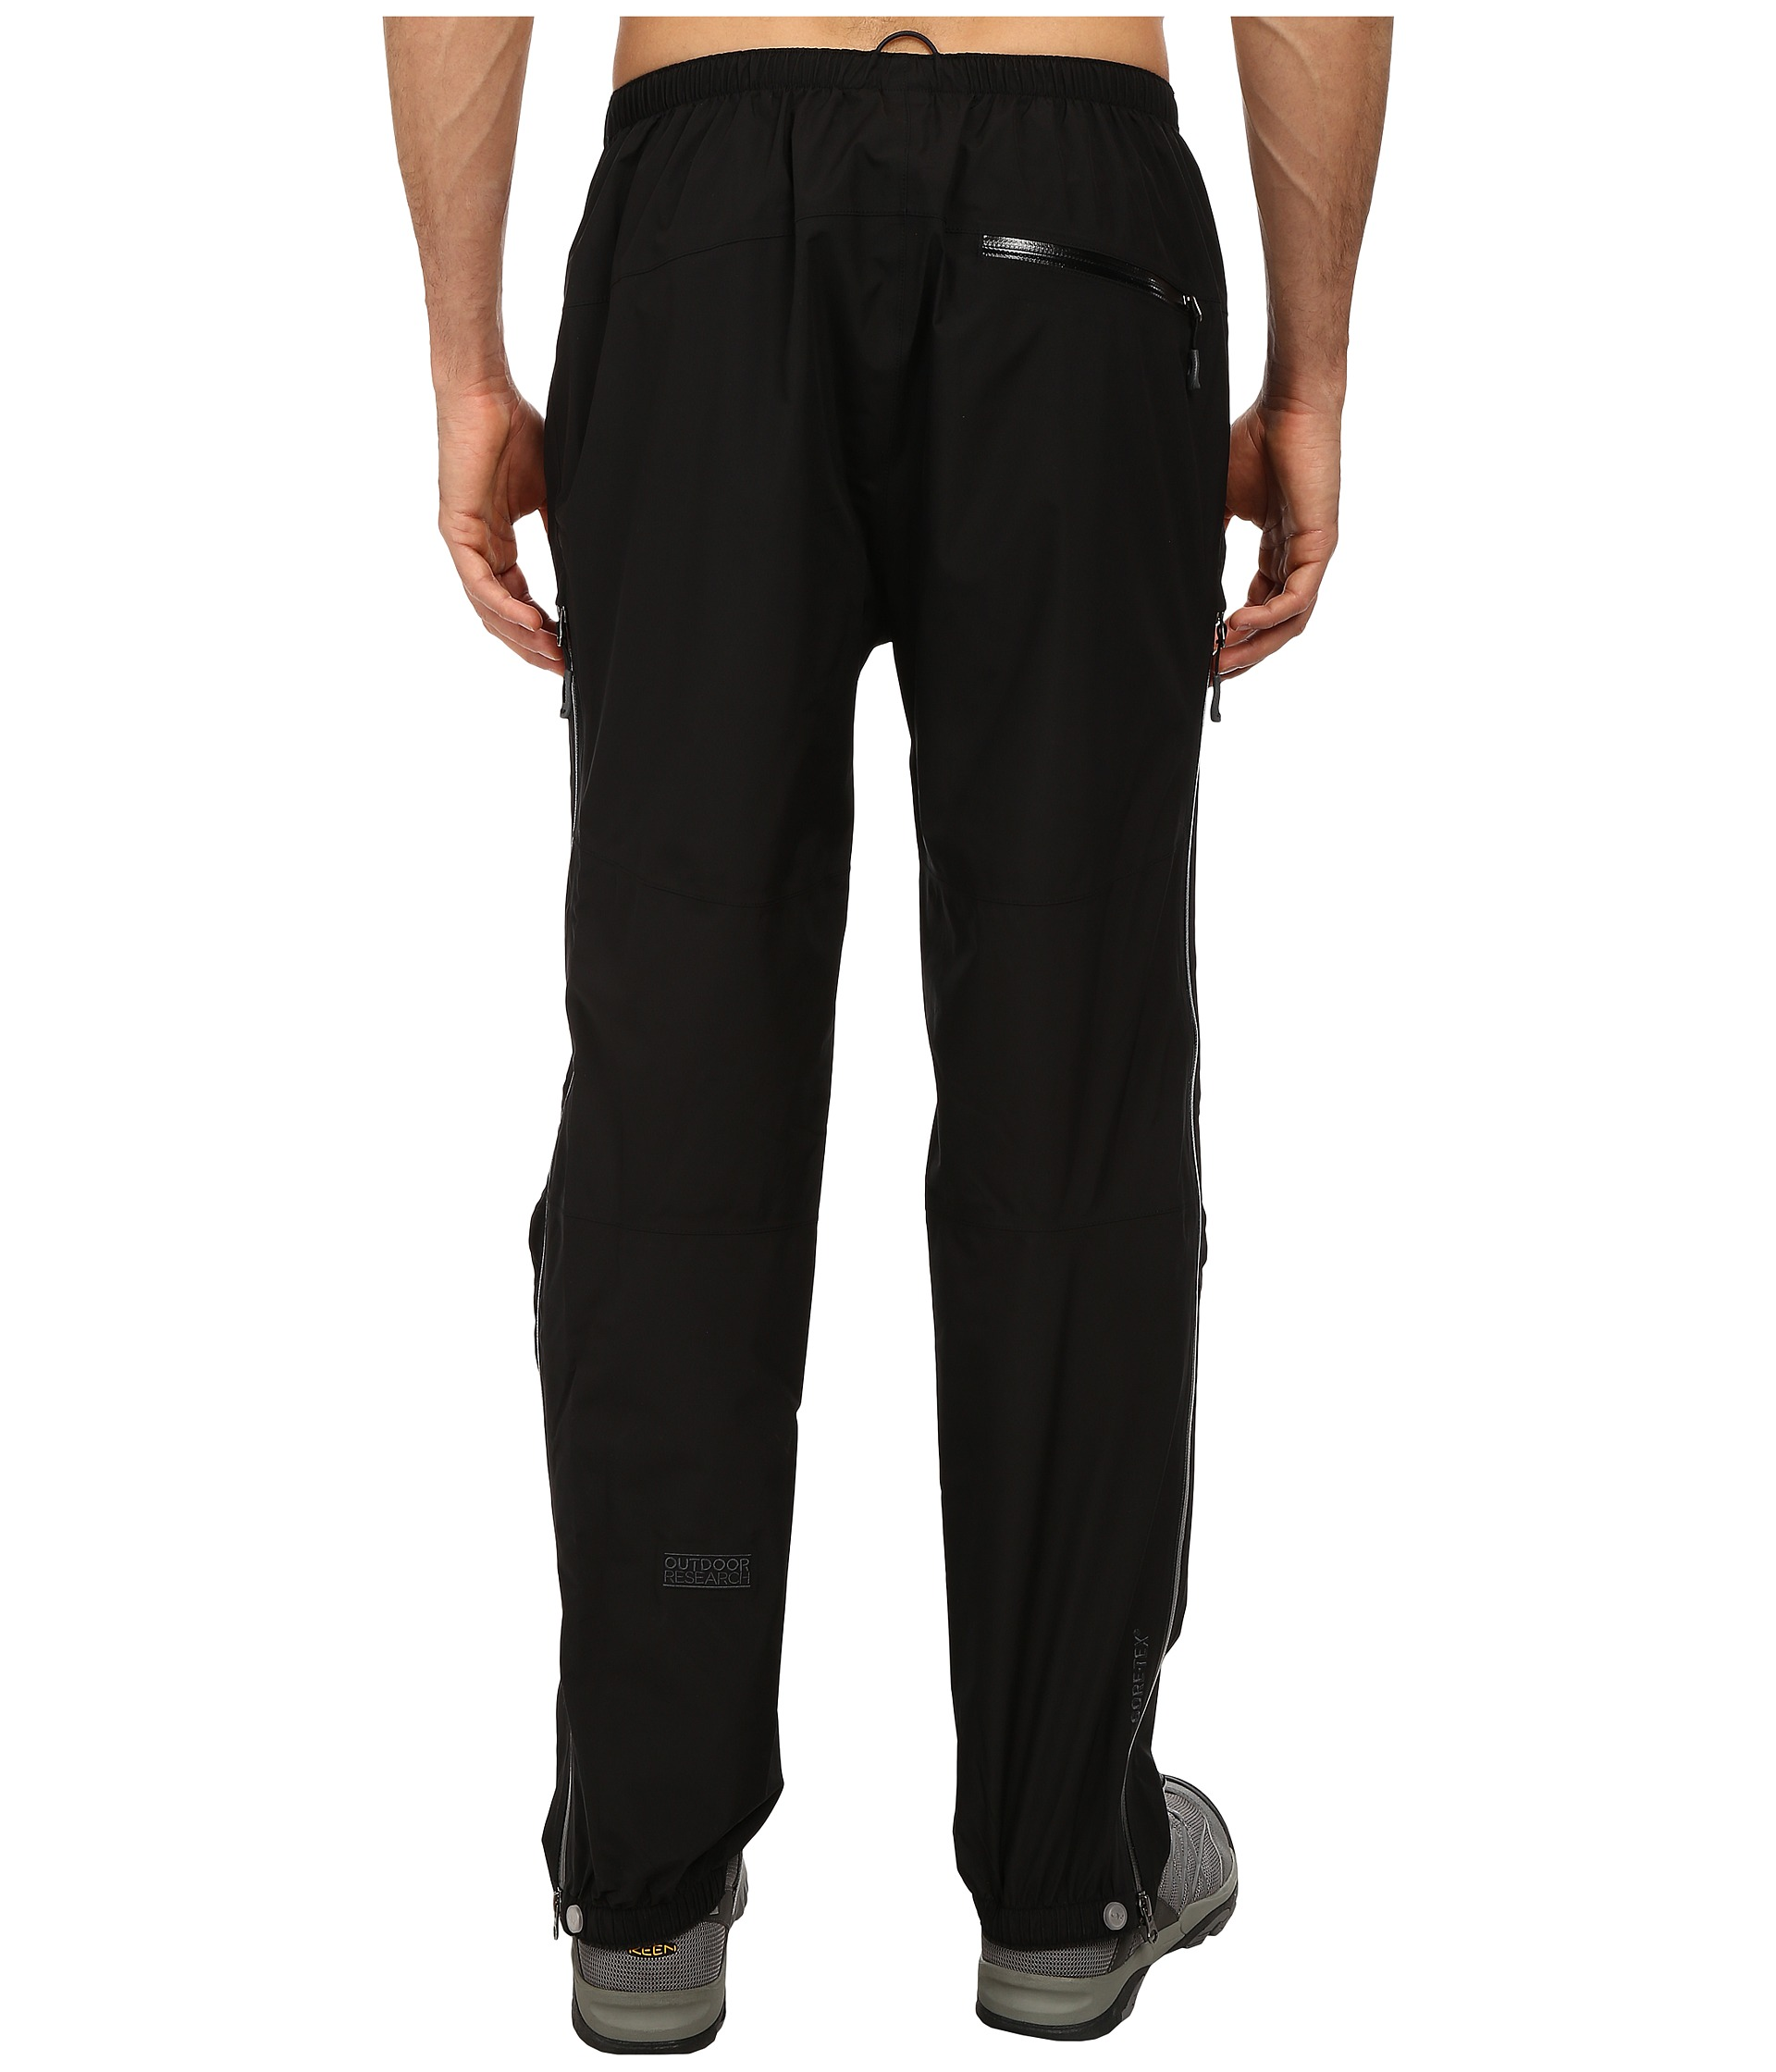 Outdoor Research Foray Pant At Zappos Com